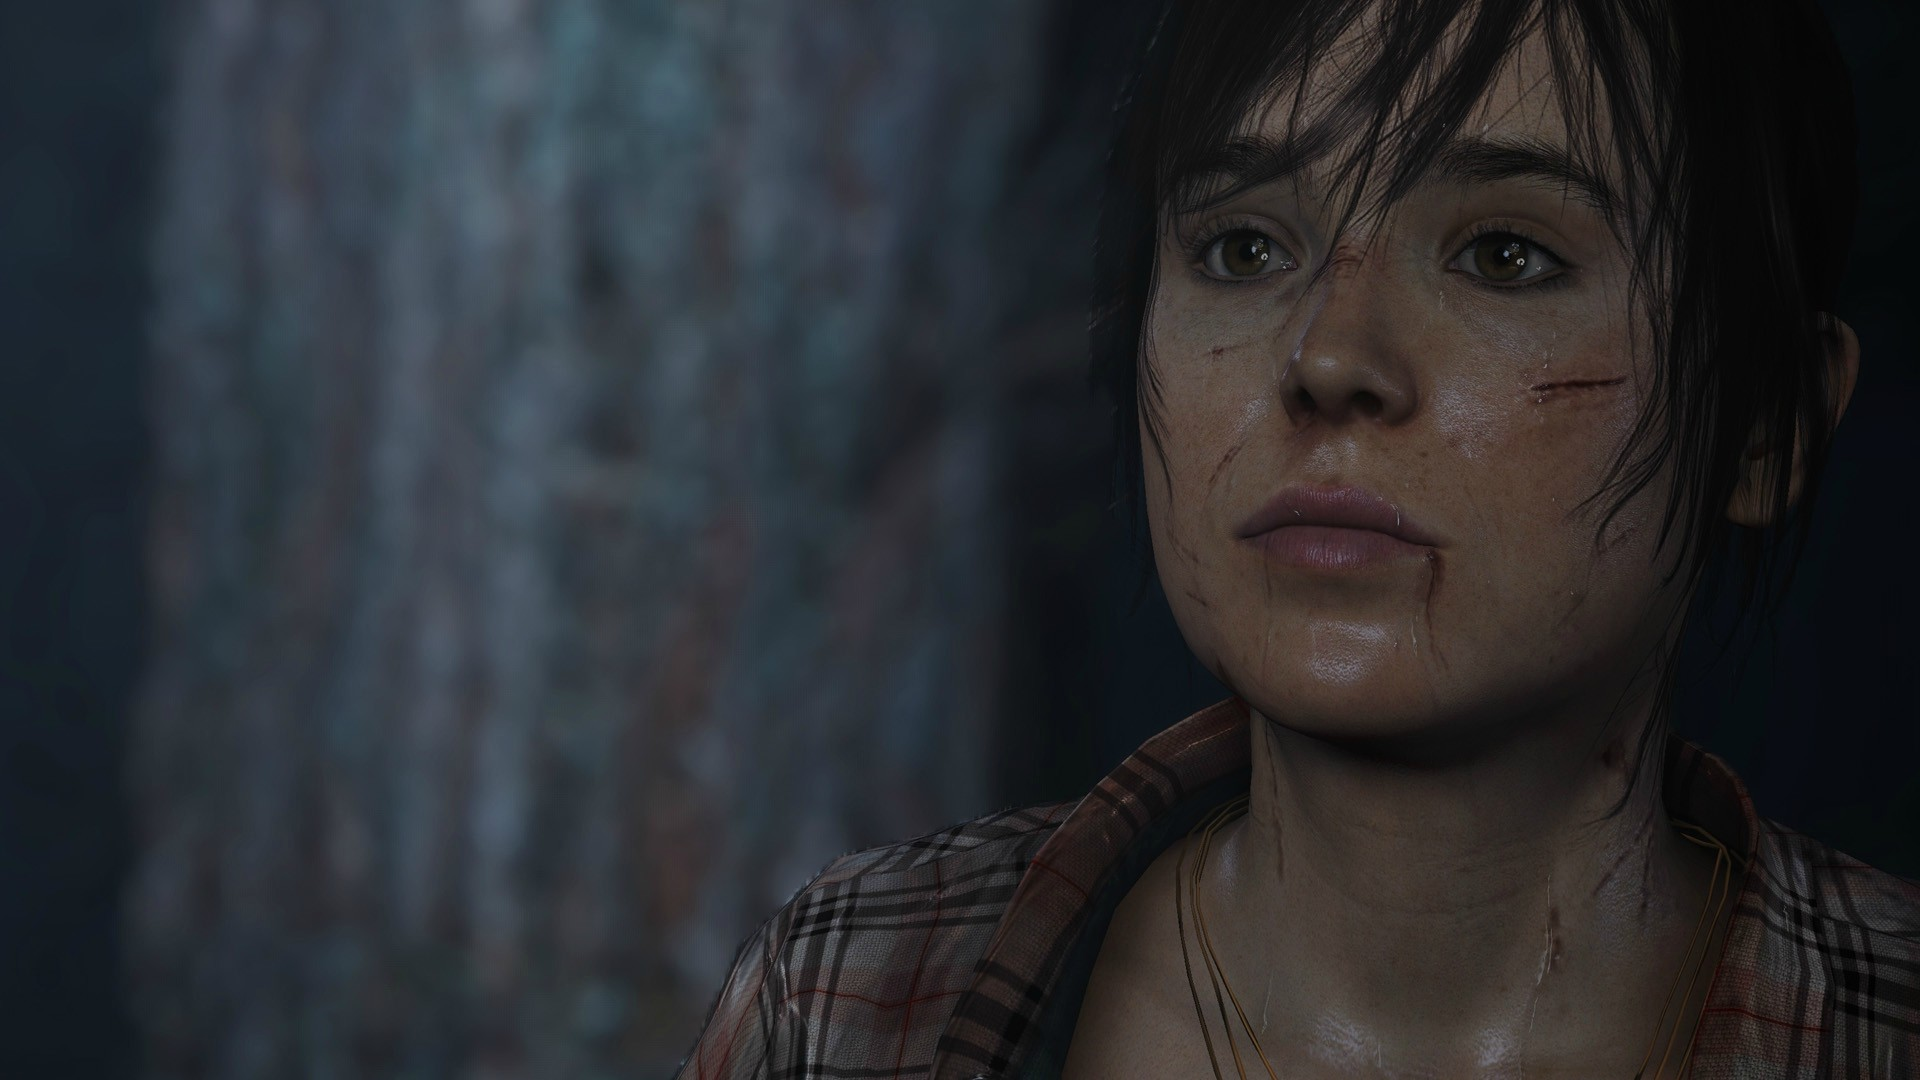 ellen page beyond e3 two souls Beyond Two Souls Willem Dafoe Reveal Trailer